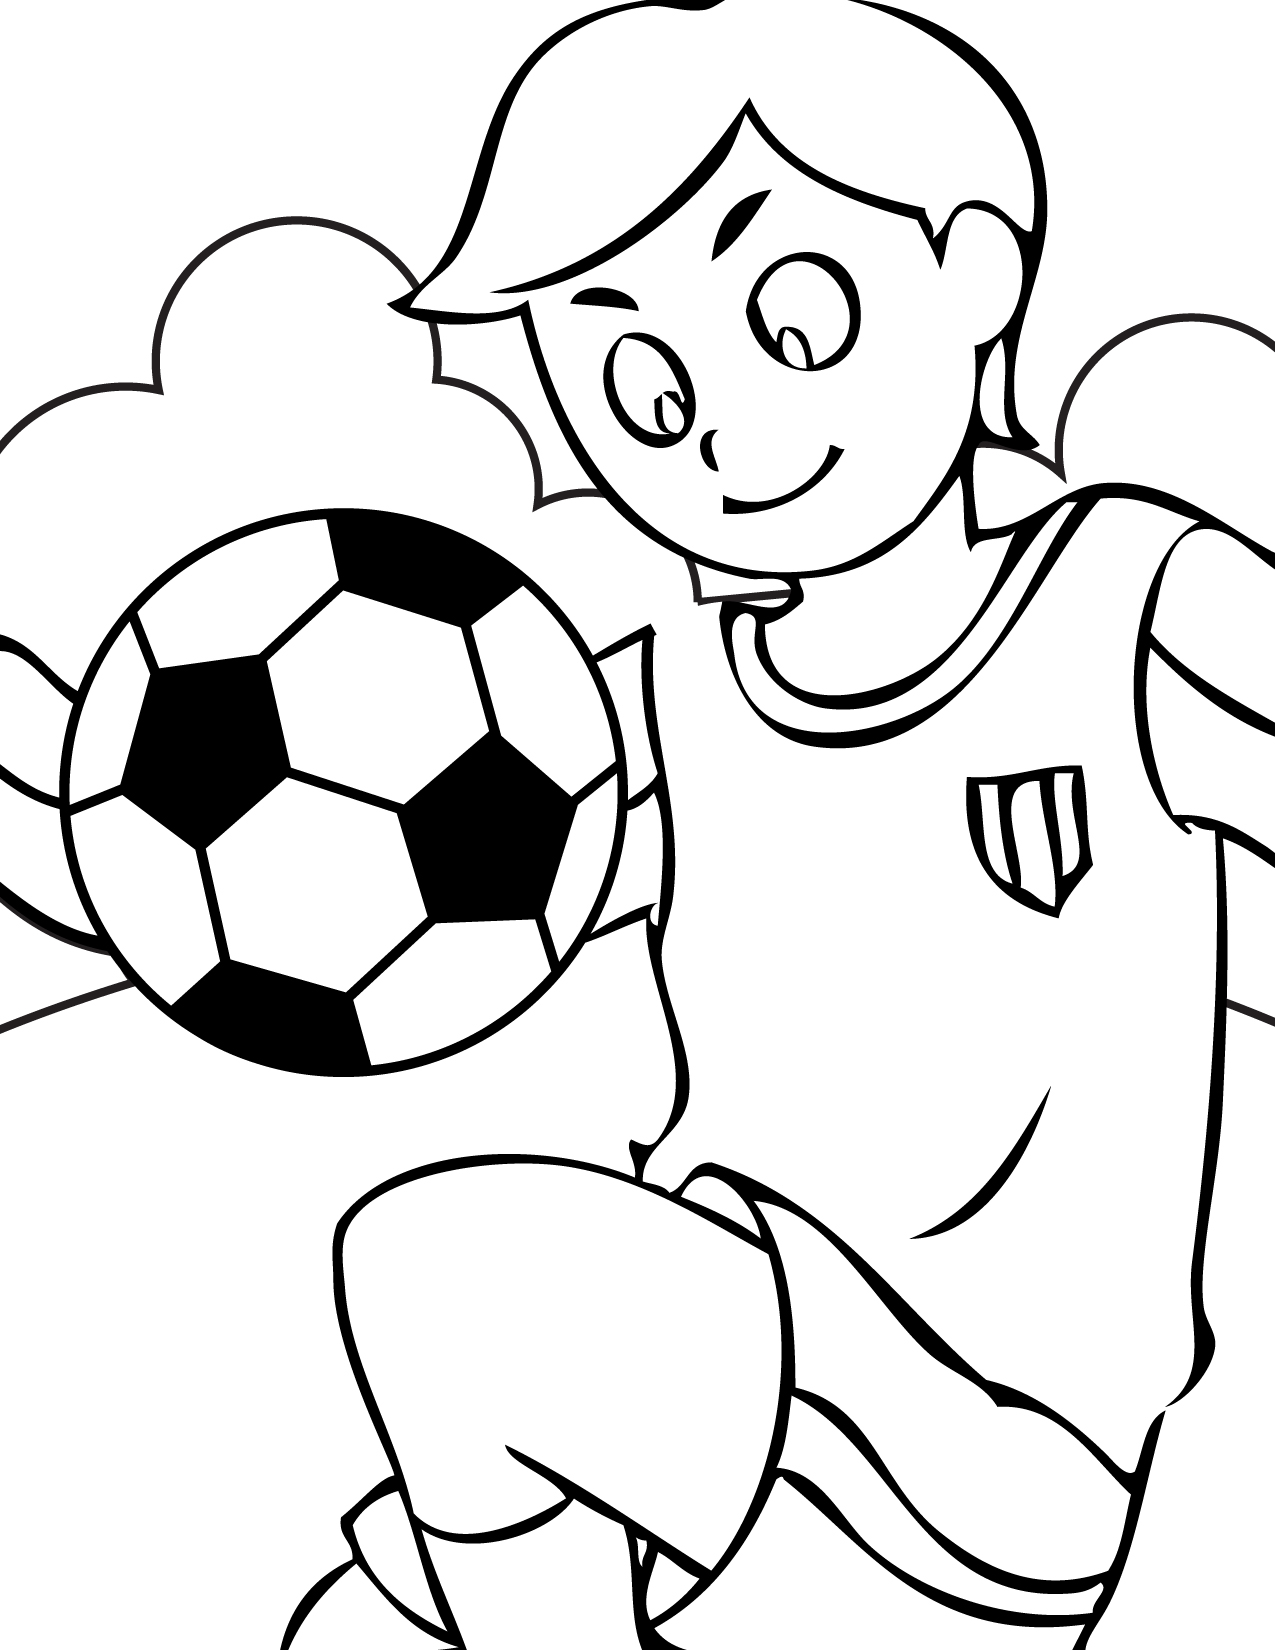 Free Sports Pictures For Kids, Download Free Clip Art